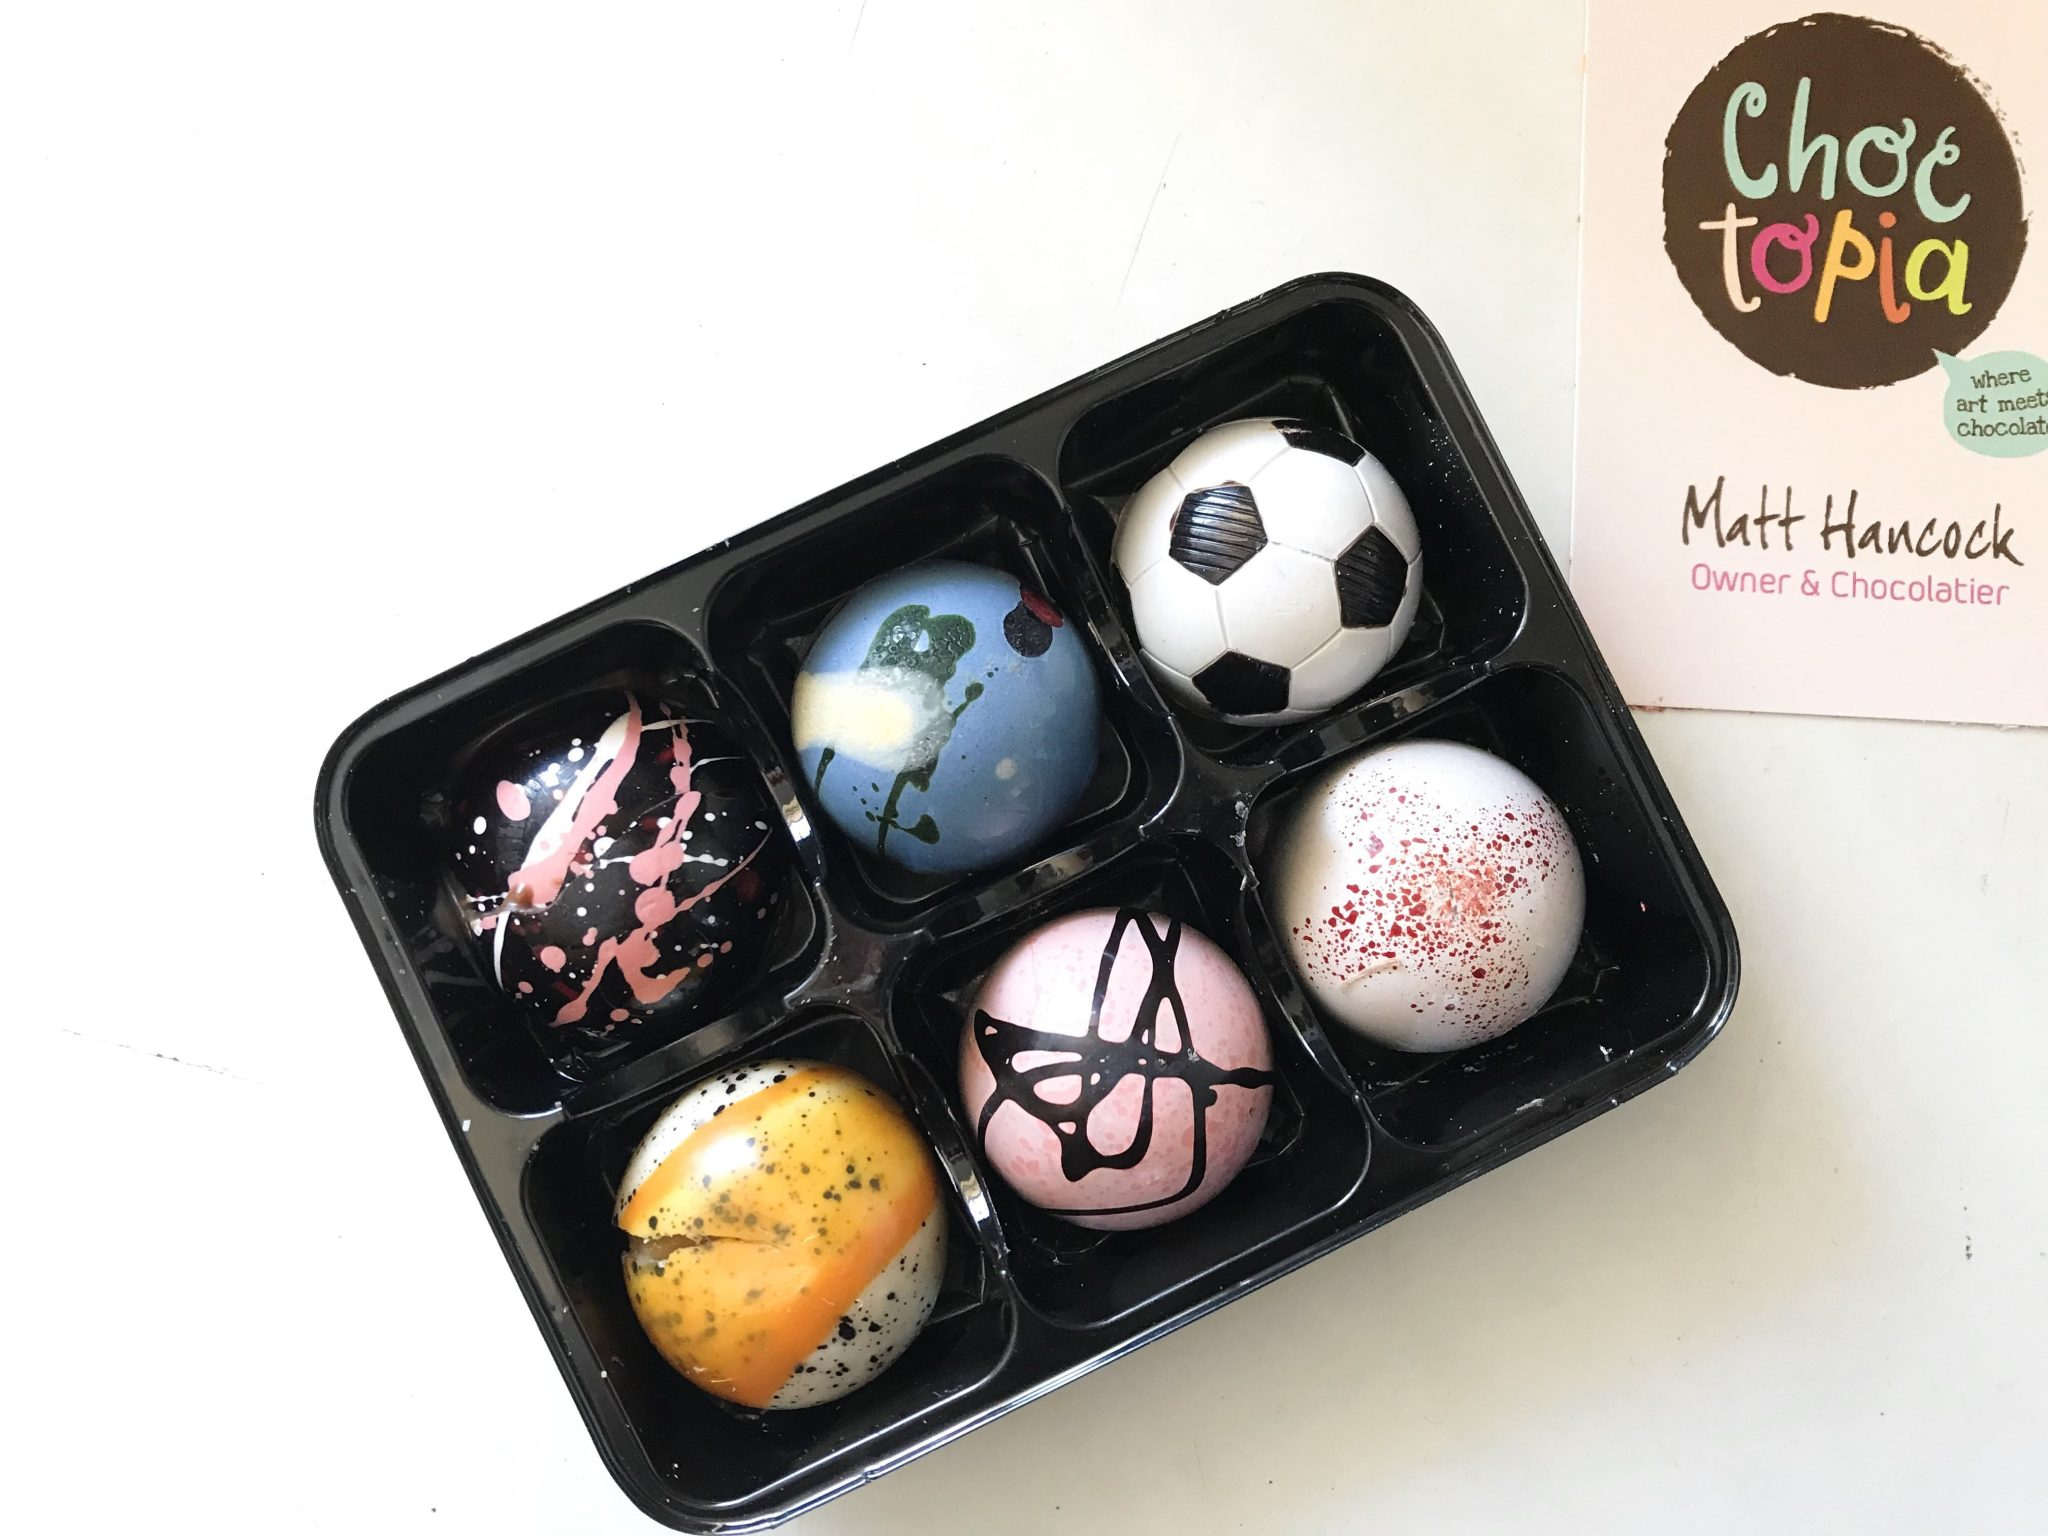 Choctopia create amazing, unique, hand crafted chocolates that are perfect for Father's Day and special occasions. Read more here https://lukeosaurusandme.co.uk